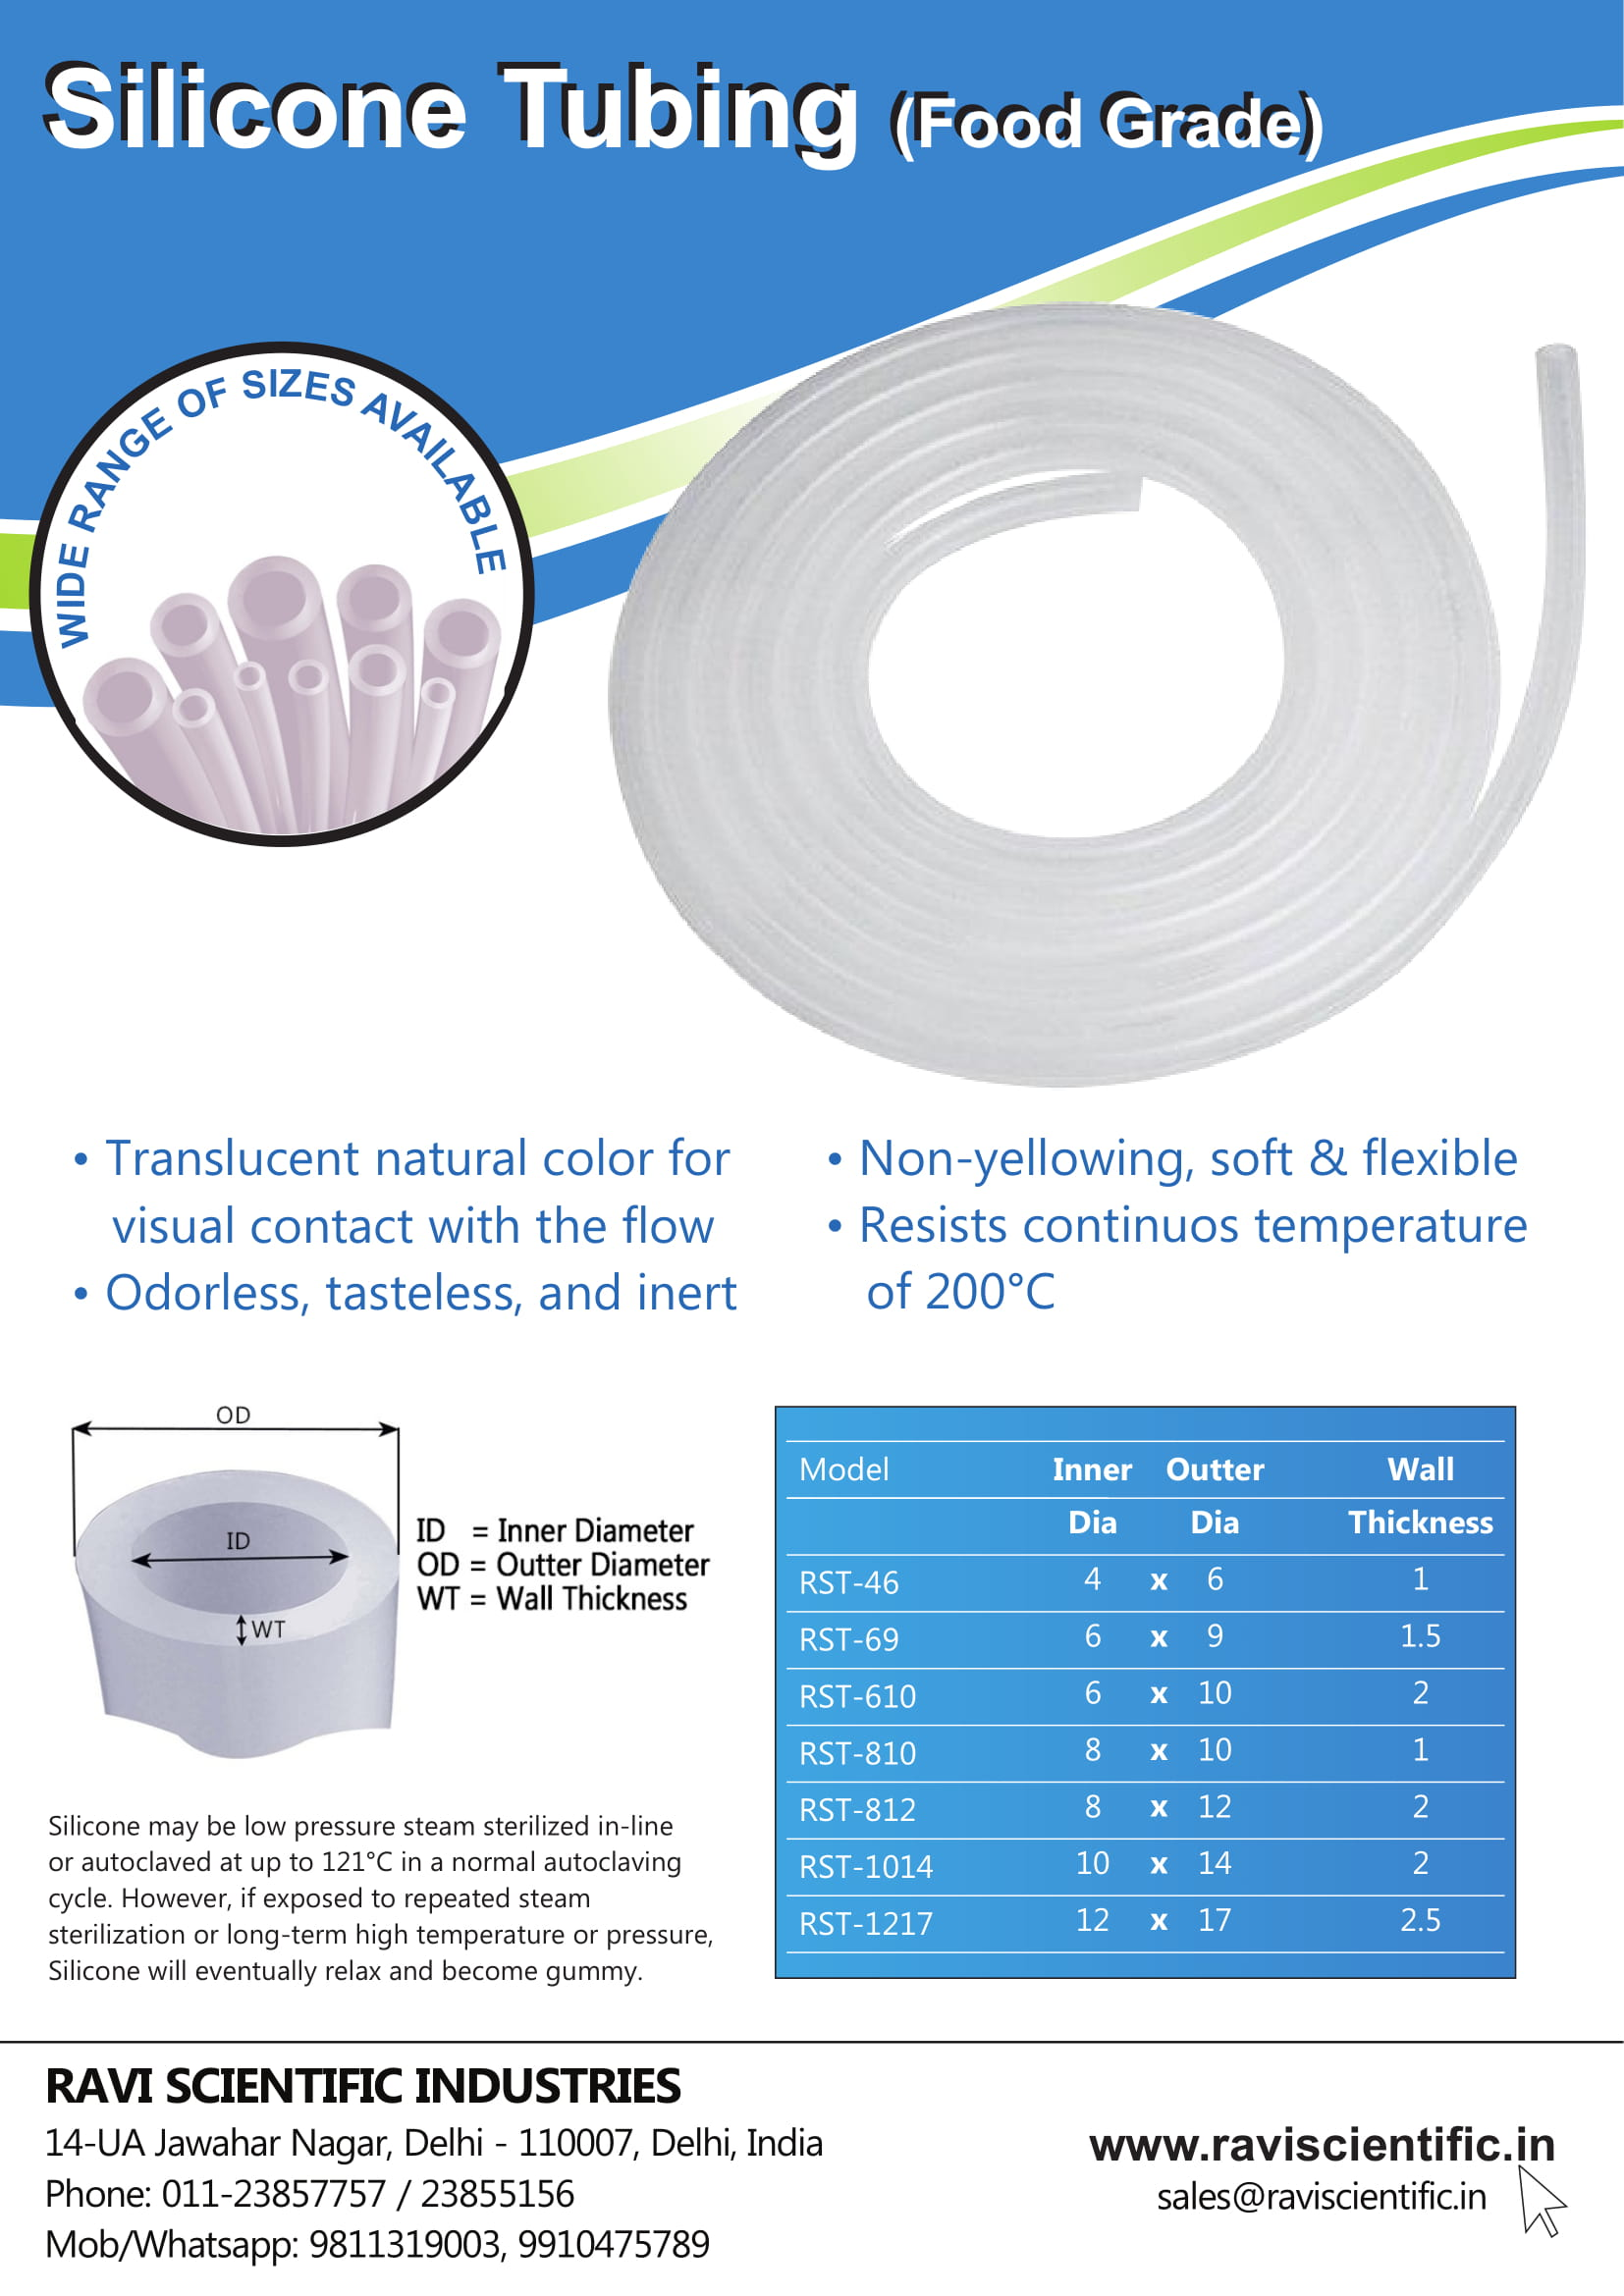 Food Grade Silicone Tubing Pamphlet